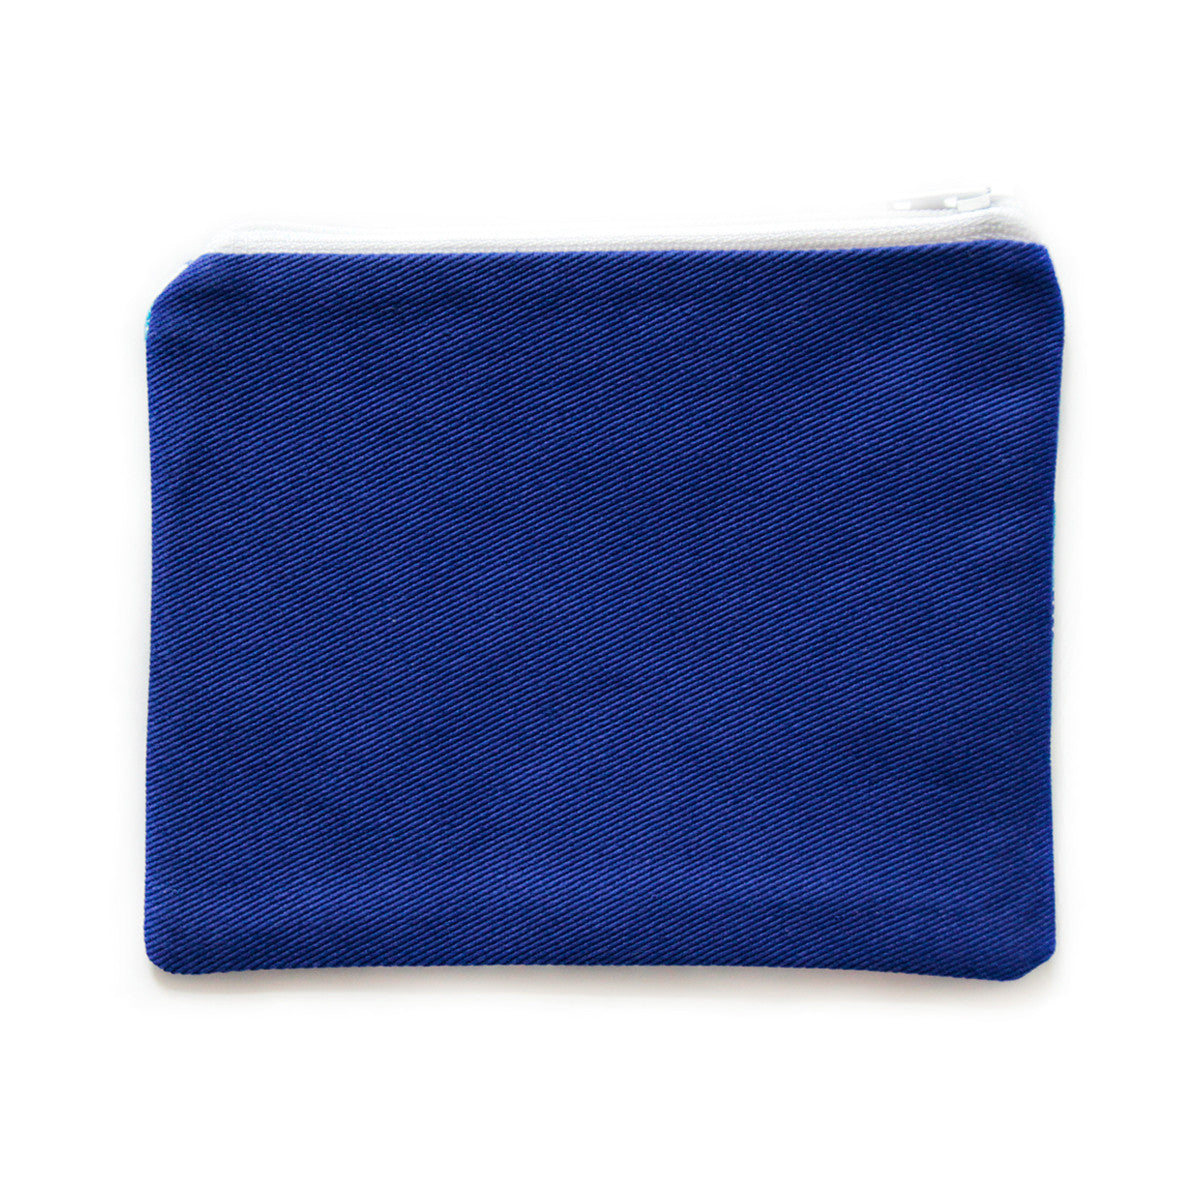 District Zip Pouch